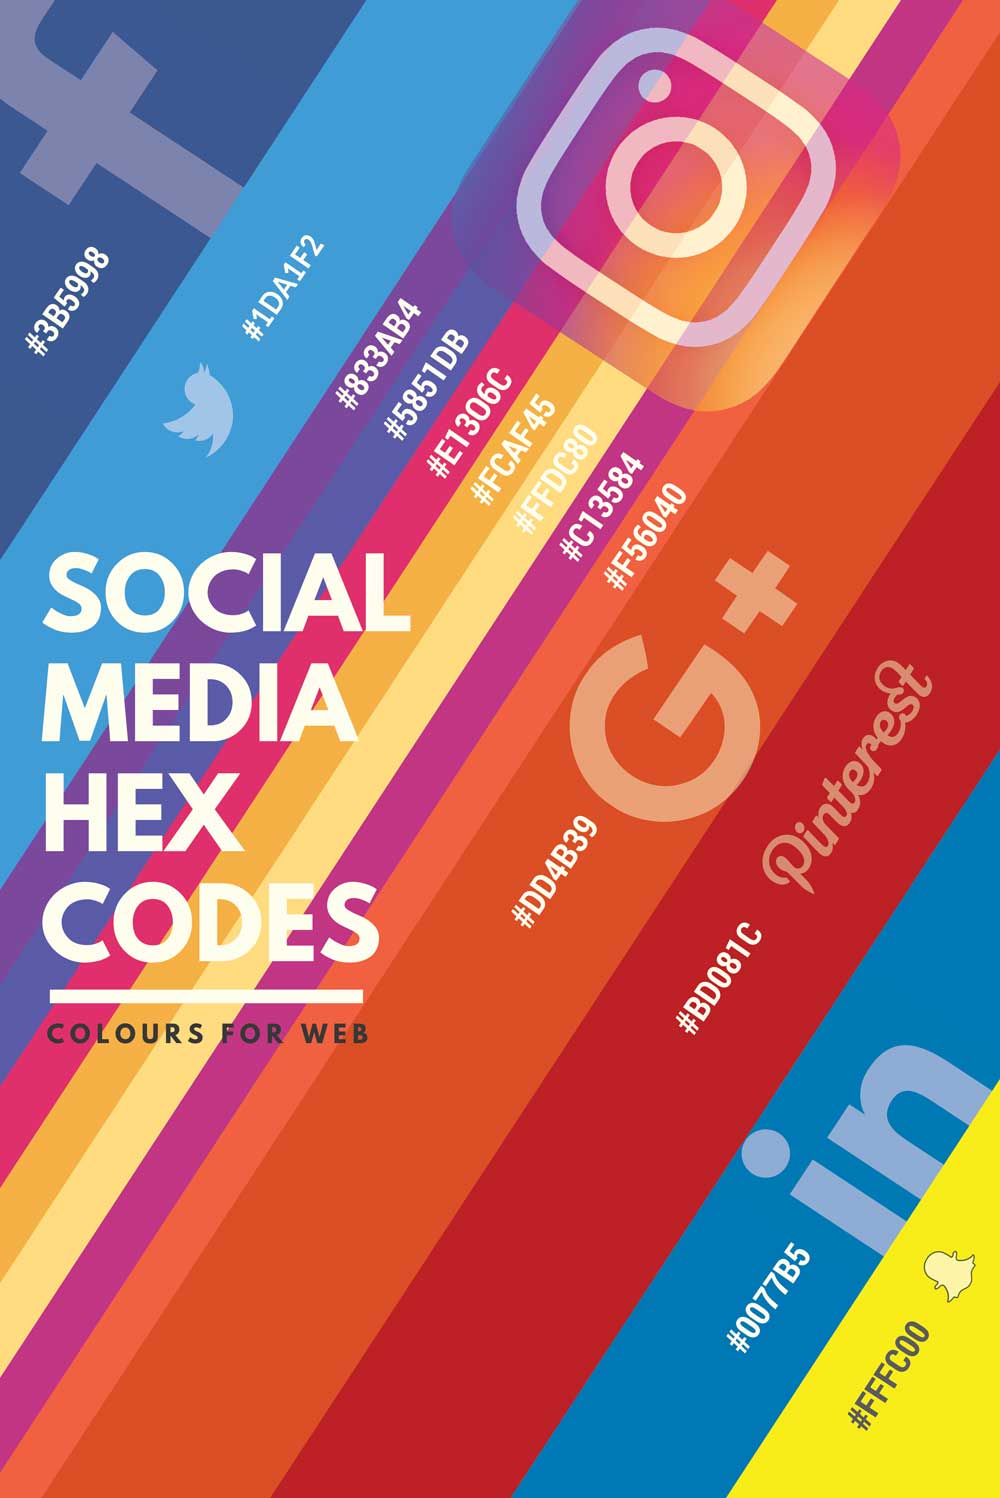 Social Media Hex Guide and Brand Assets